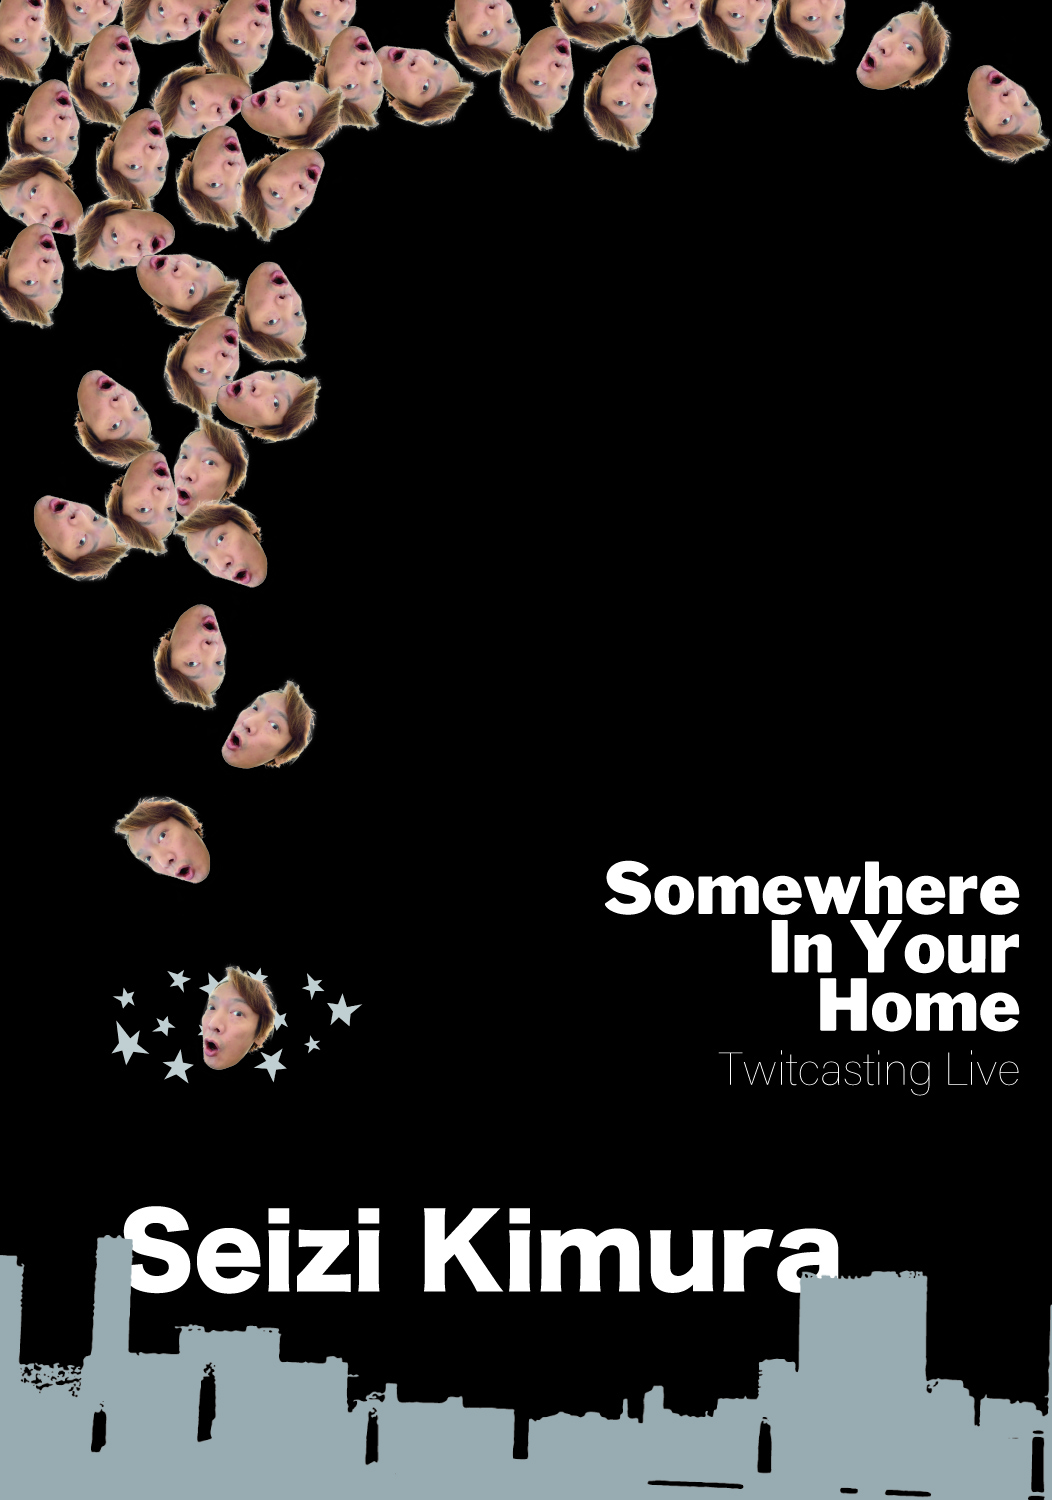 Somewhere In Your Home 2020/5/23